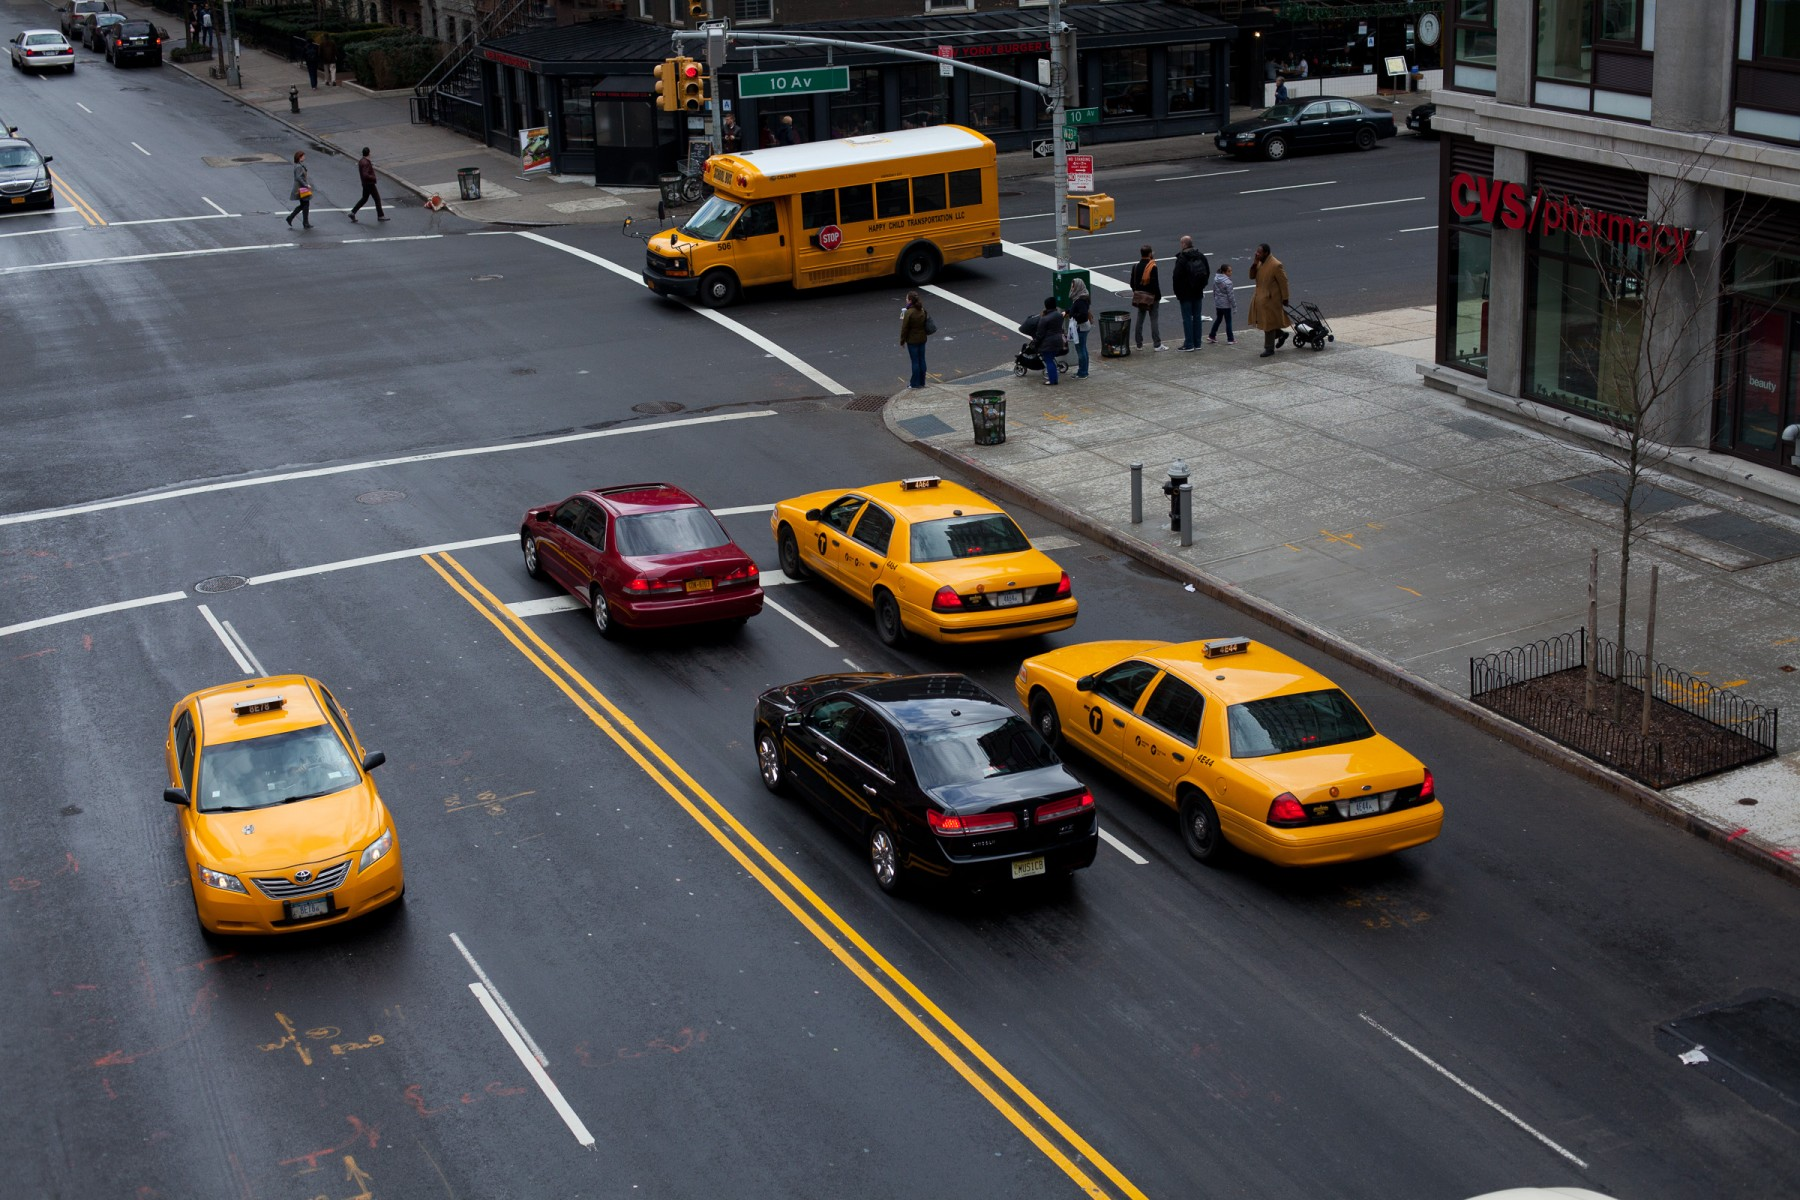 Yellow Cabs at an intersection in NYC